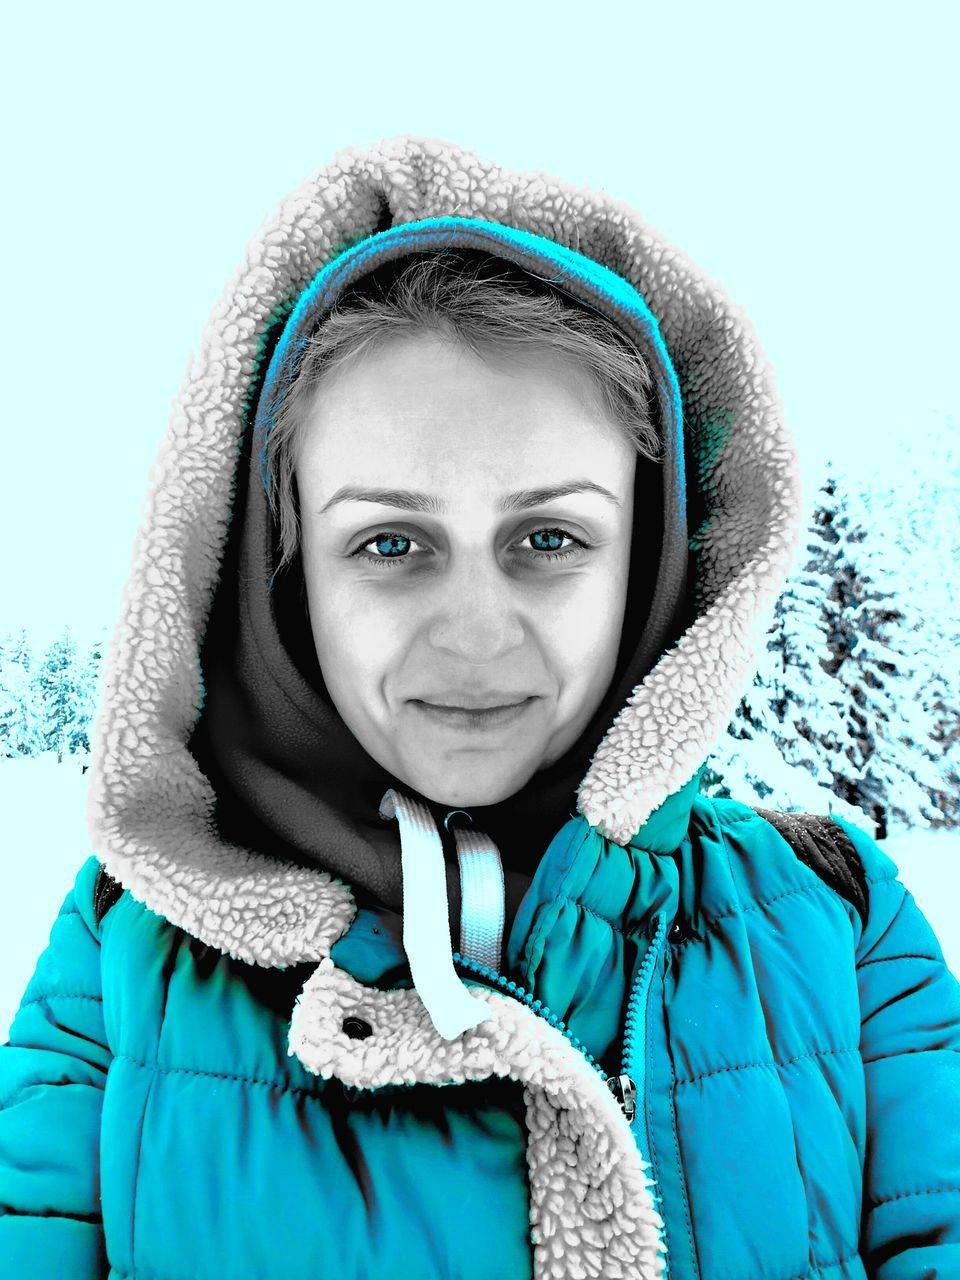 winter, looking at camera, snow, warm clothing, cold temperature, hood - clothing, portrait, real people, scarf, front view, jacket, lifestyles, one person, hooded shirt, day, outdoors, headshot, young women, close-up, nature, young adult